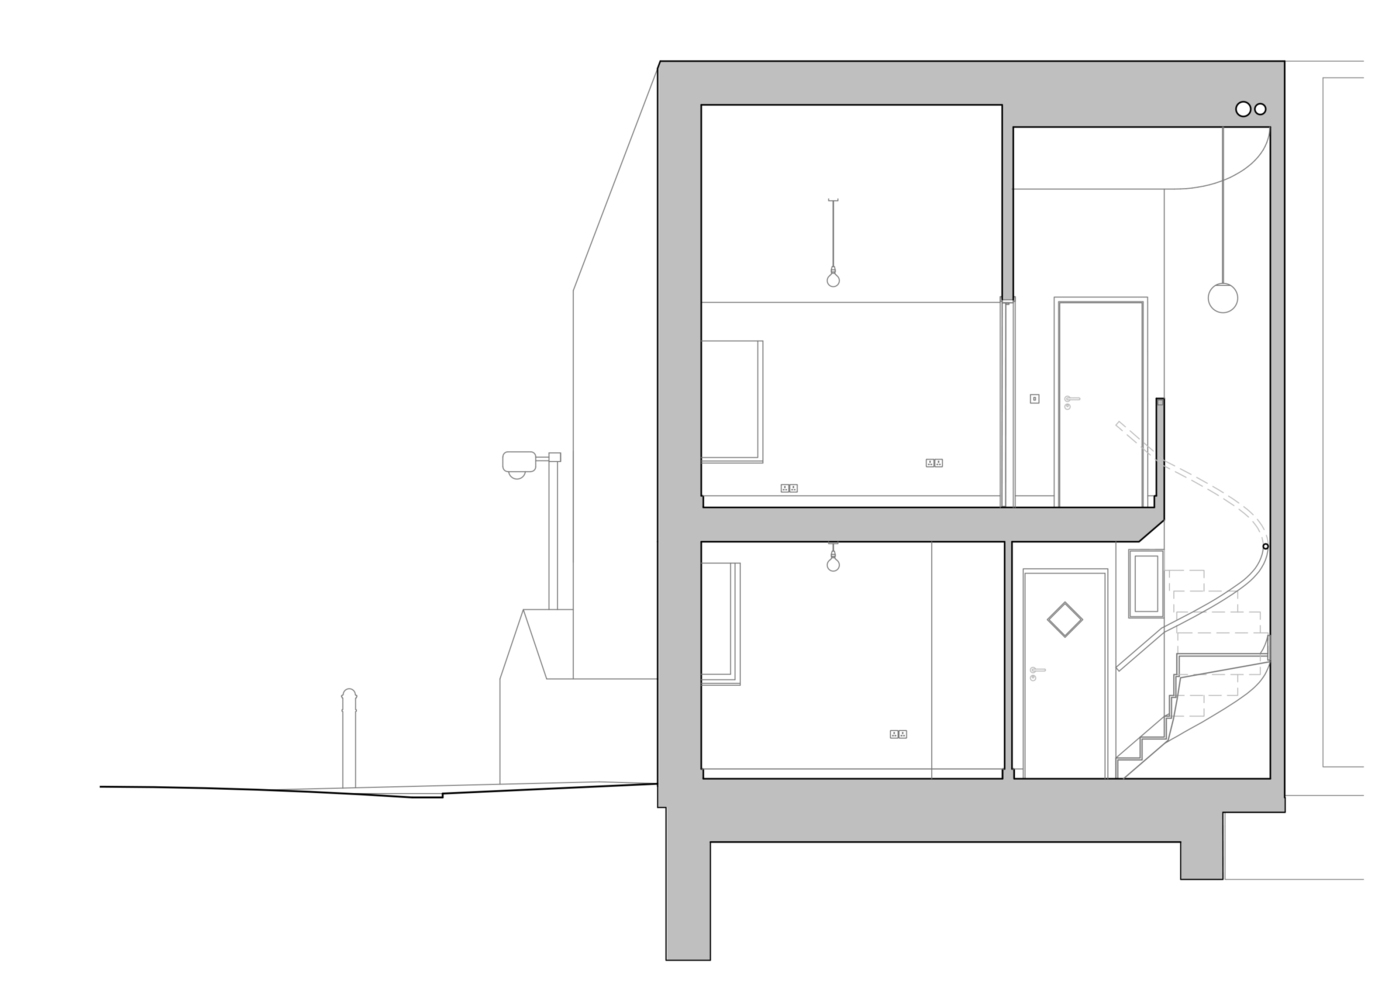 medium resolution of salmen house bedroom and stair section scale 1 to 50 at a3